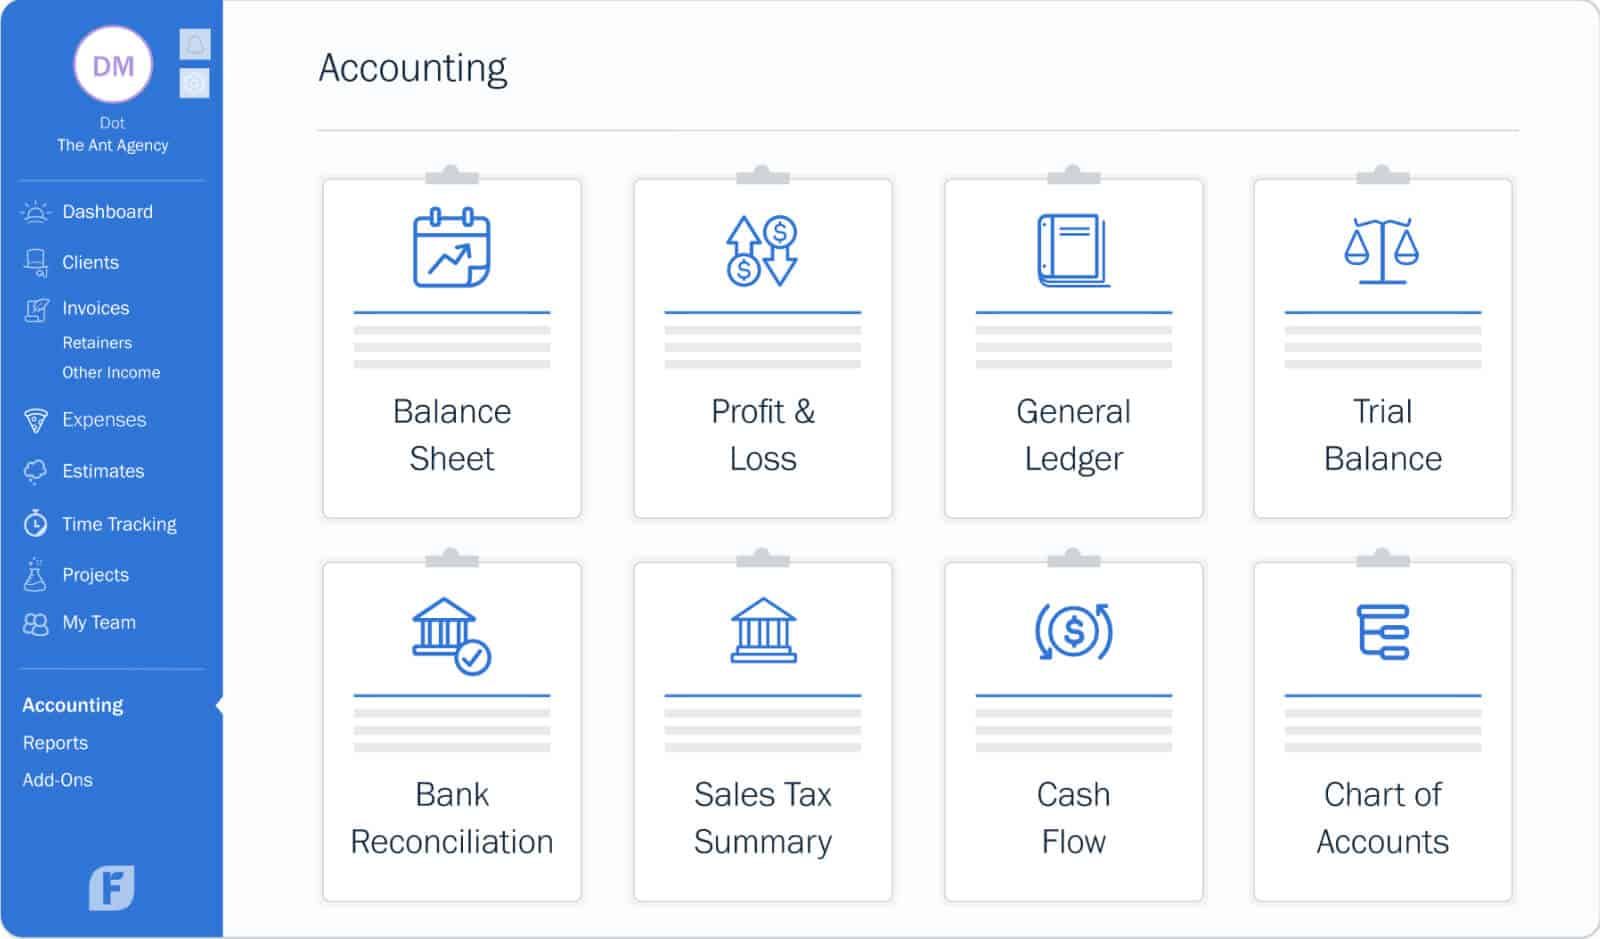 With FreshBooks, you can easily stay atop your P&L management, quickly generate balance sheets, and enjoy a stress-free tax season.